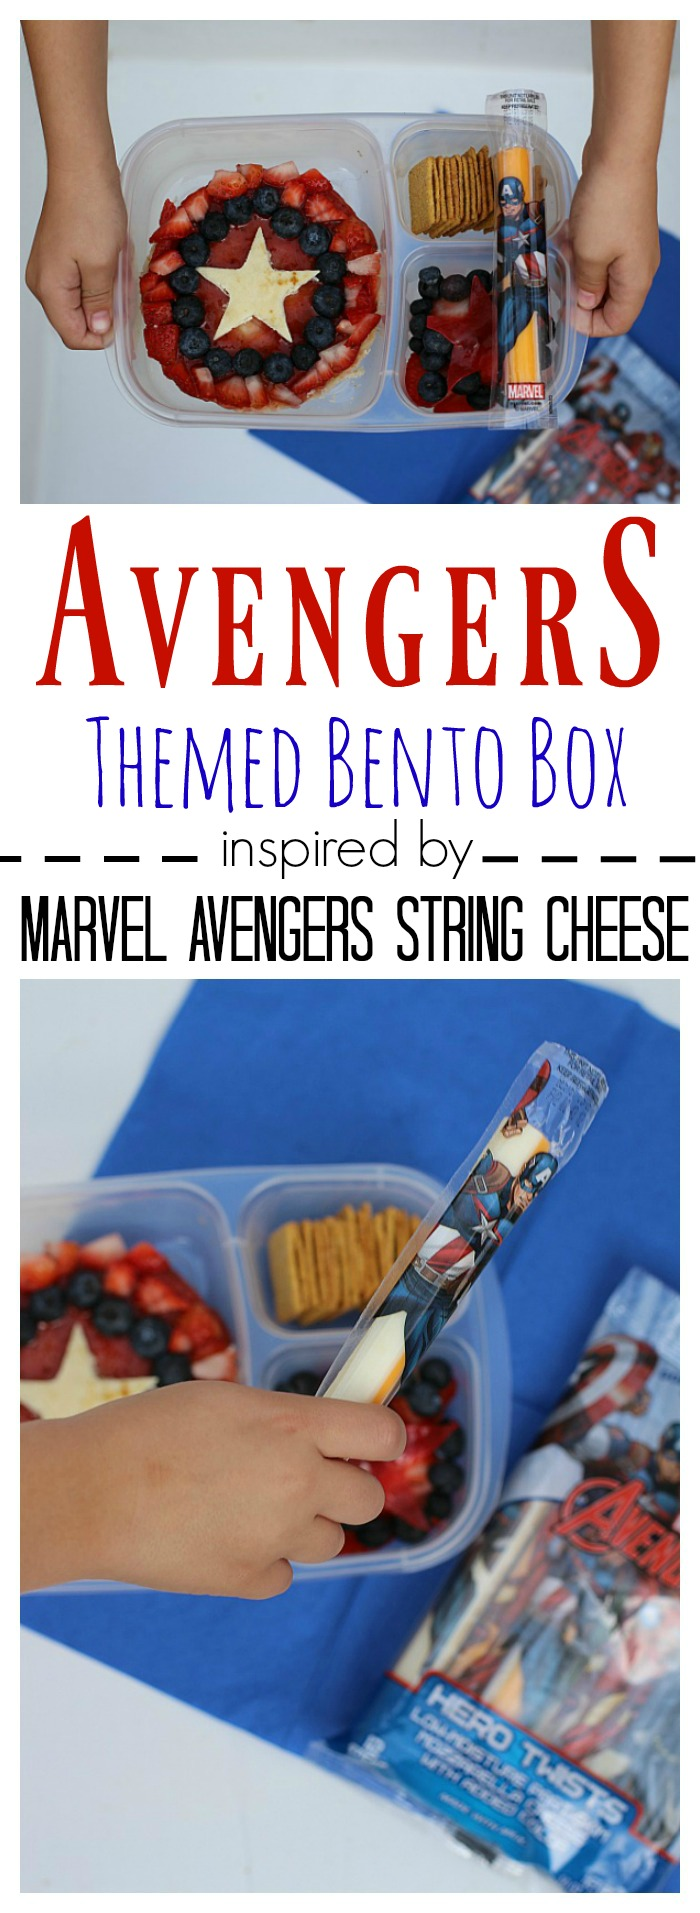 avengers-themed-bento-box